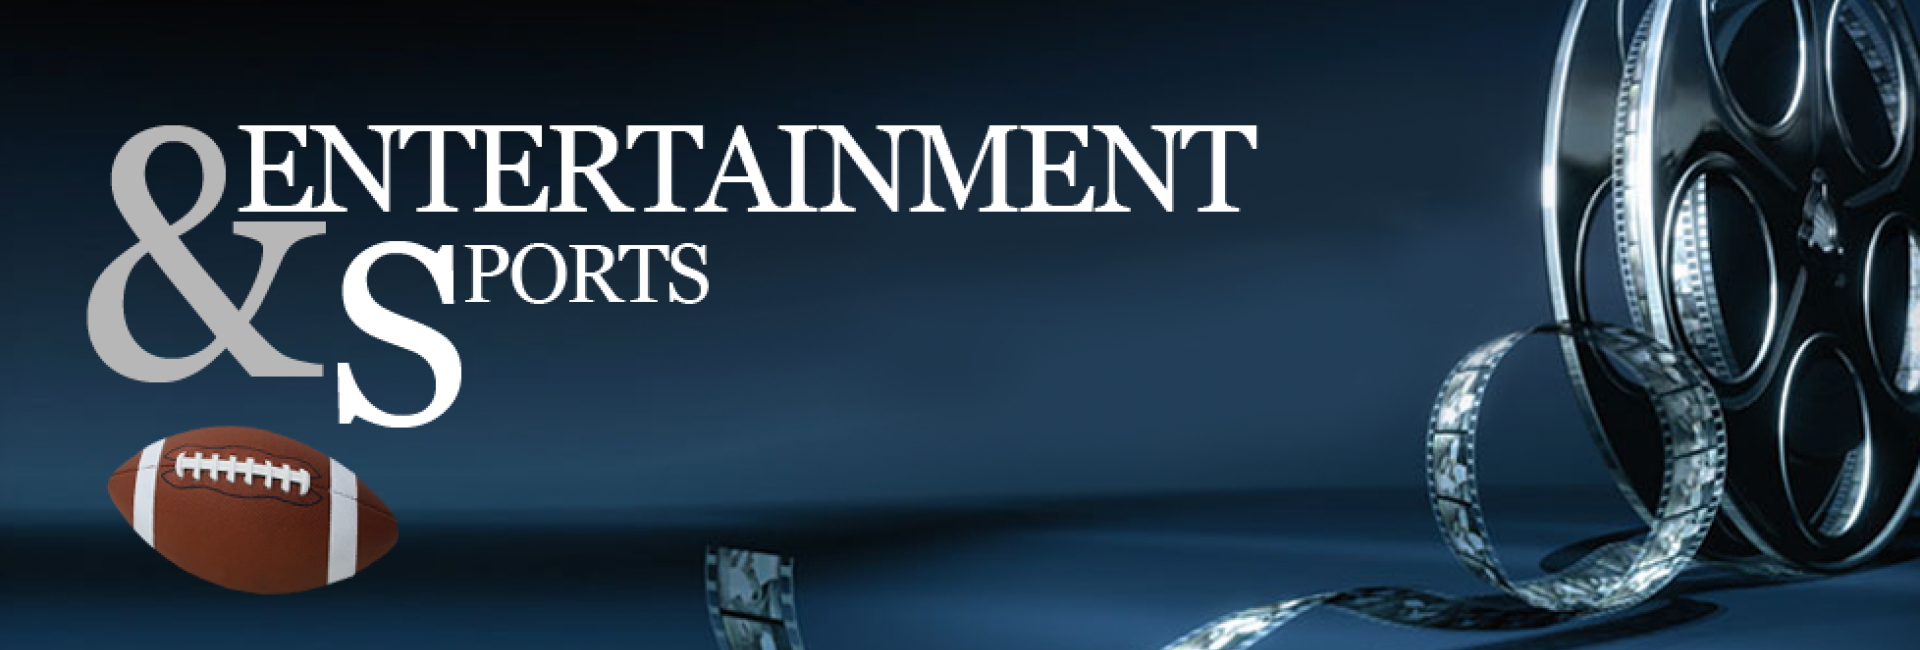 Entertainment & Sports Law